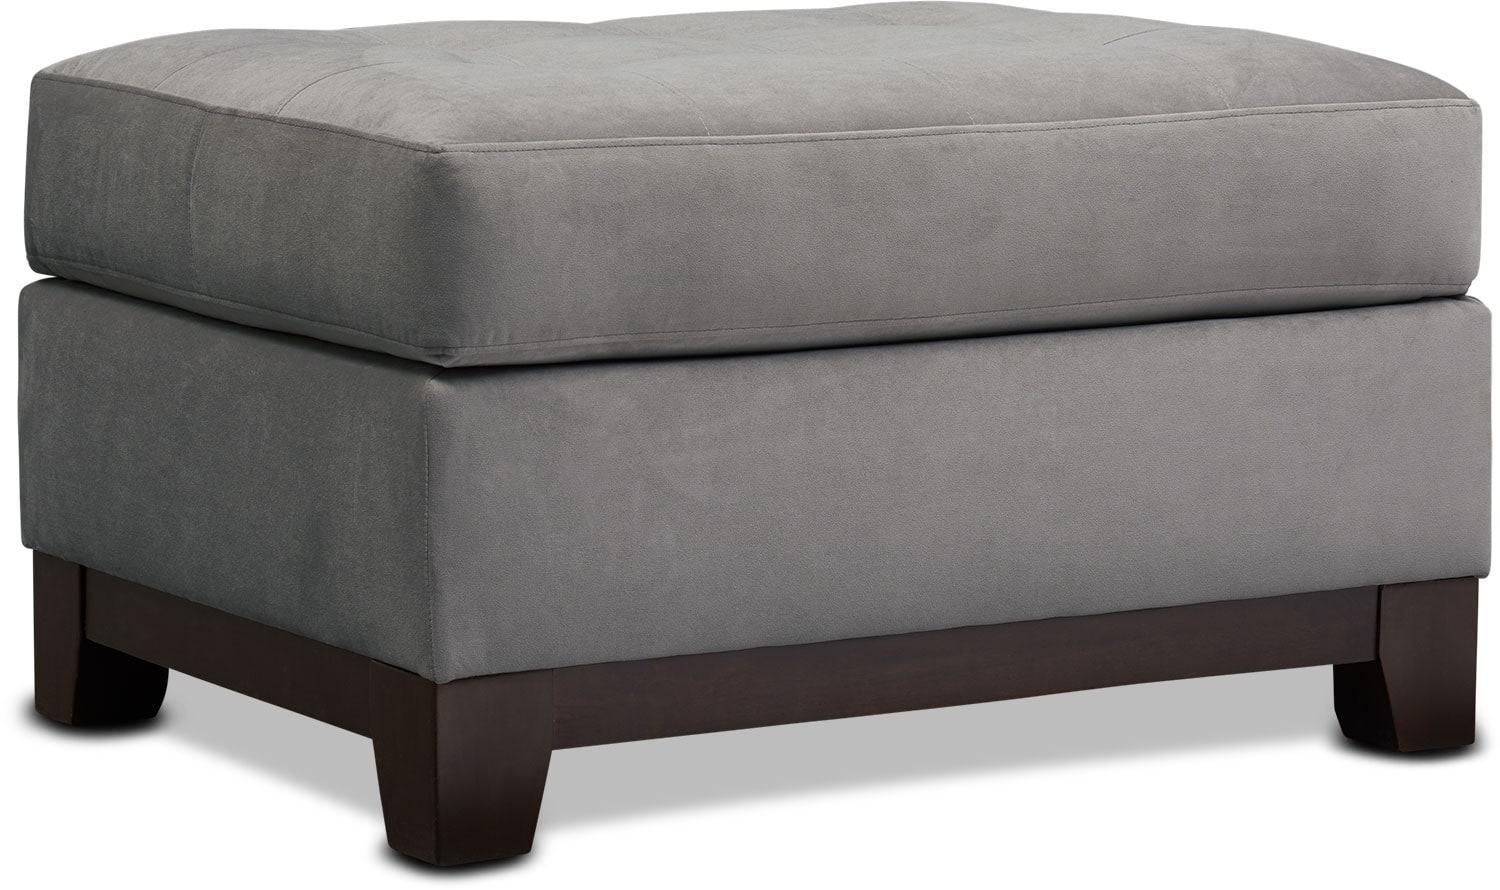 Living Room Furniture - Sebring Ottoman